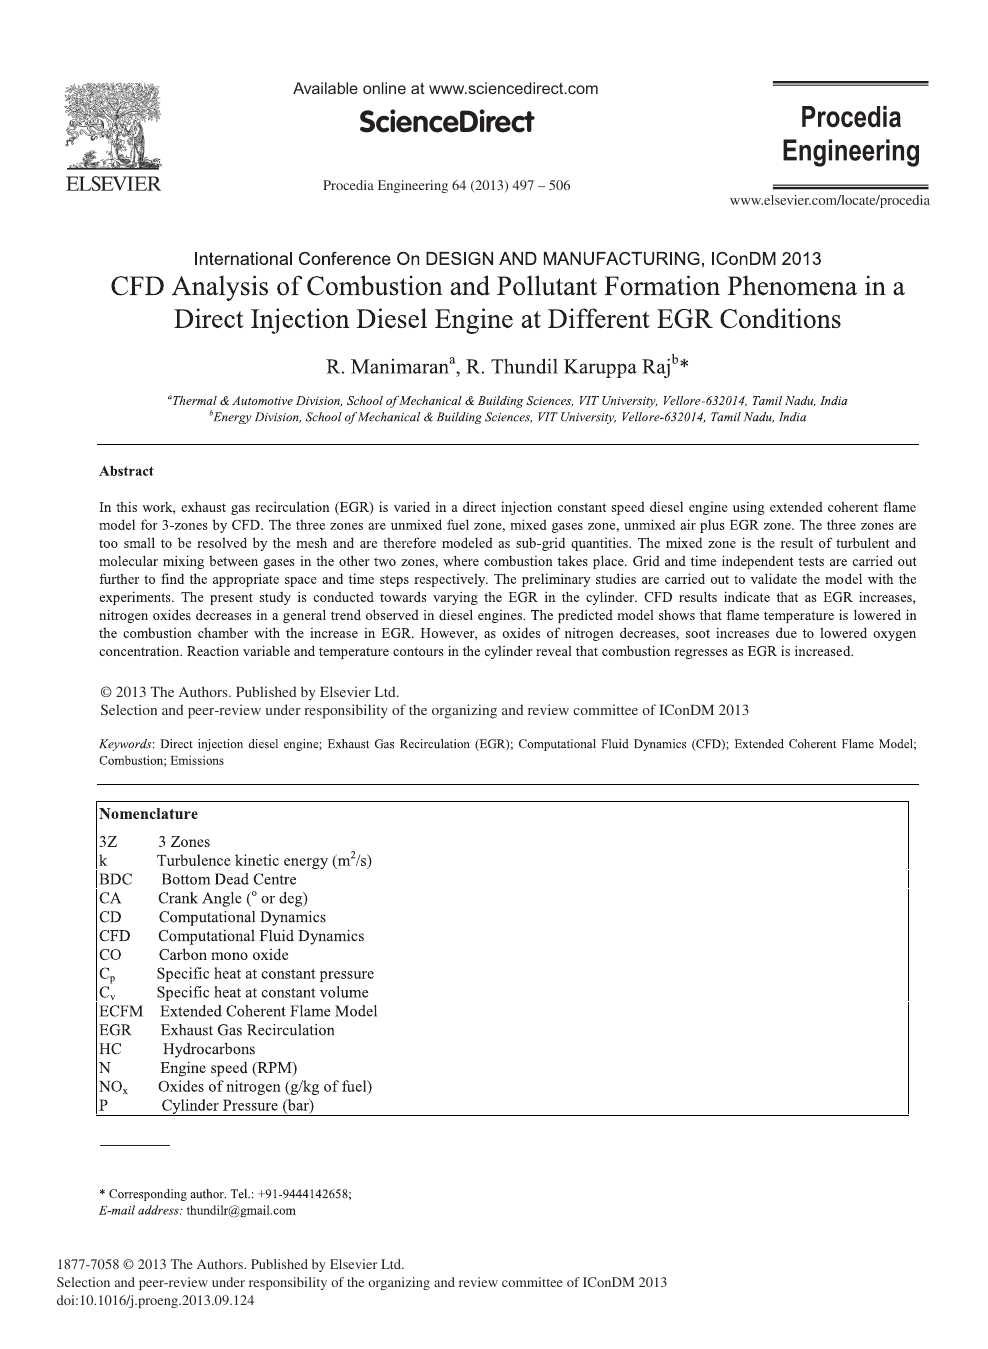 CFD Analysis of Combustion and Pollutant Formation Phenomena